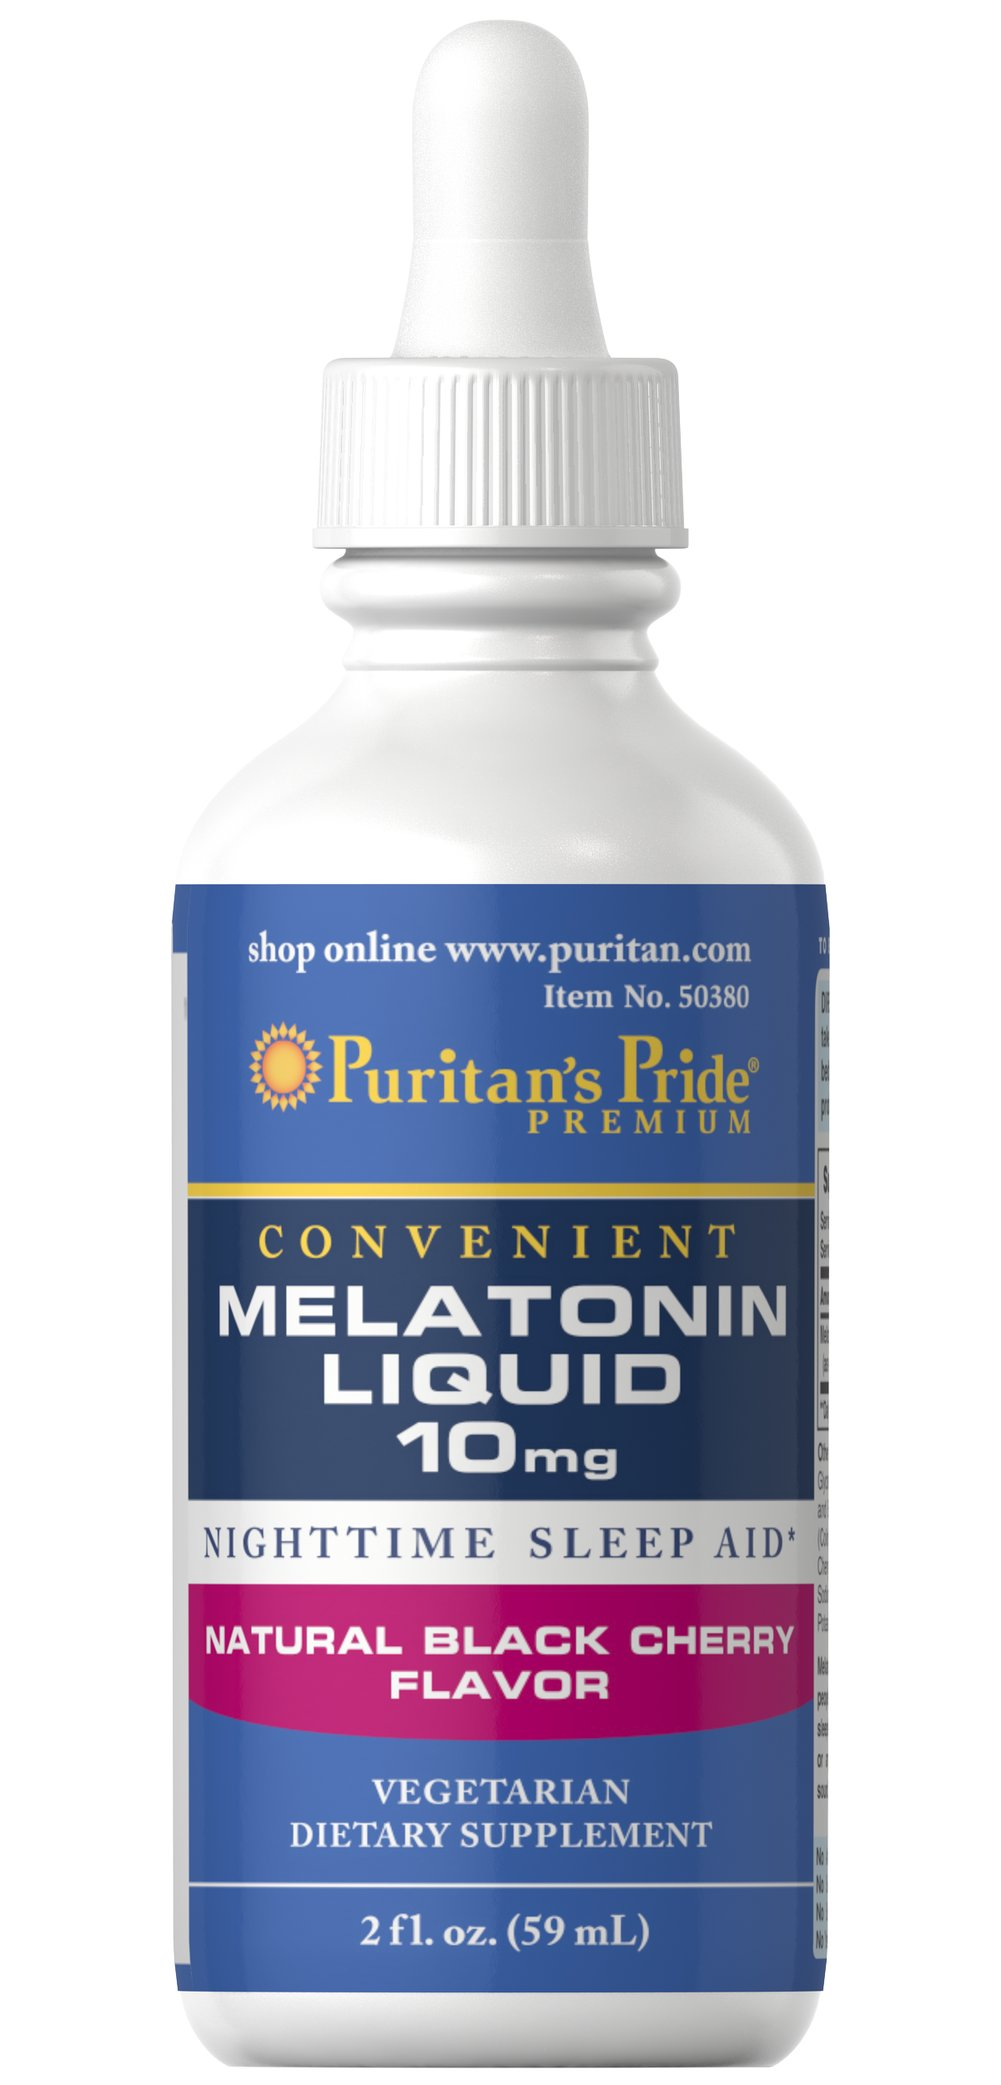 Melatonin Liquid 10 mg Black Cherry Flavor Thumbnail Alternate Bottle View